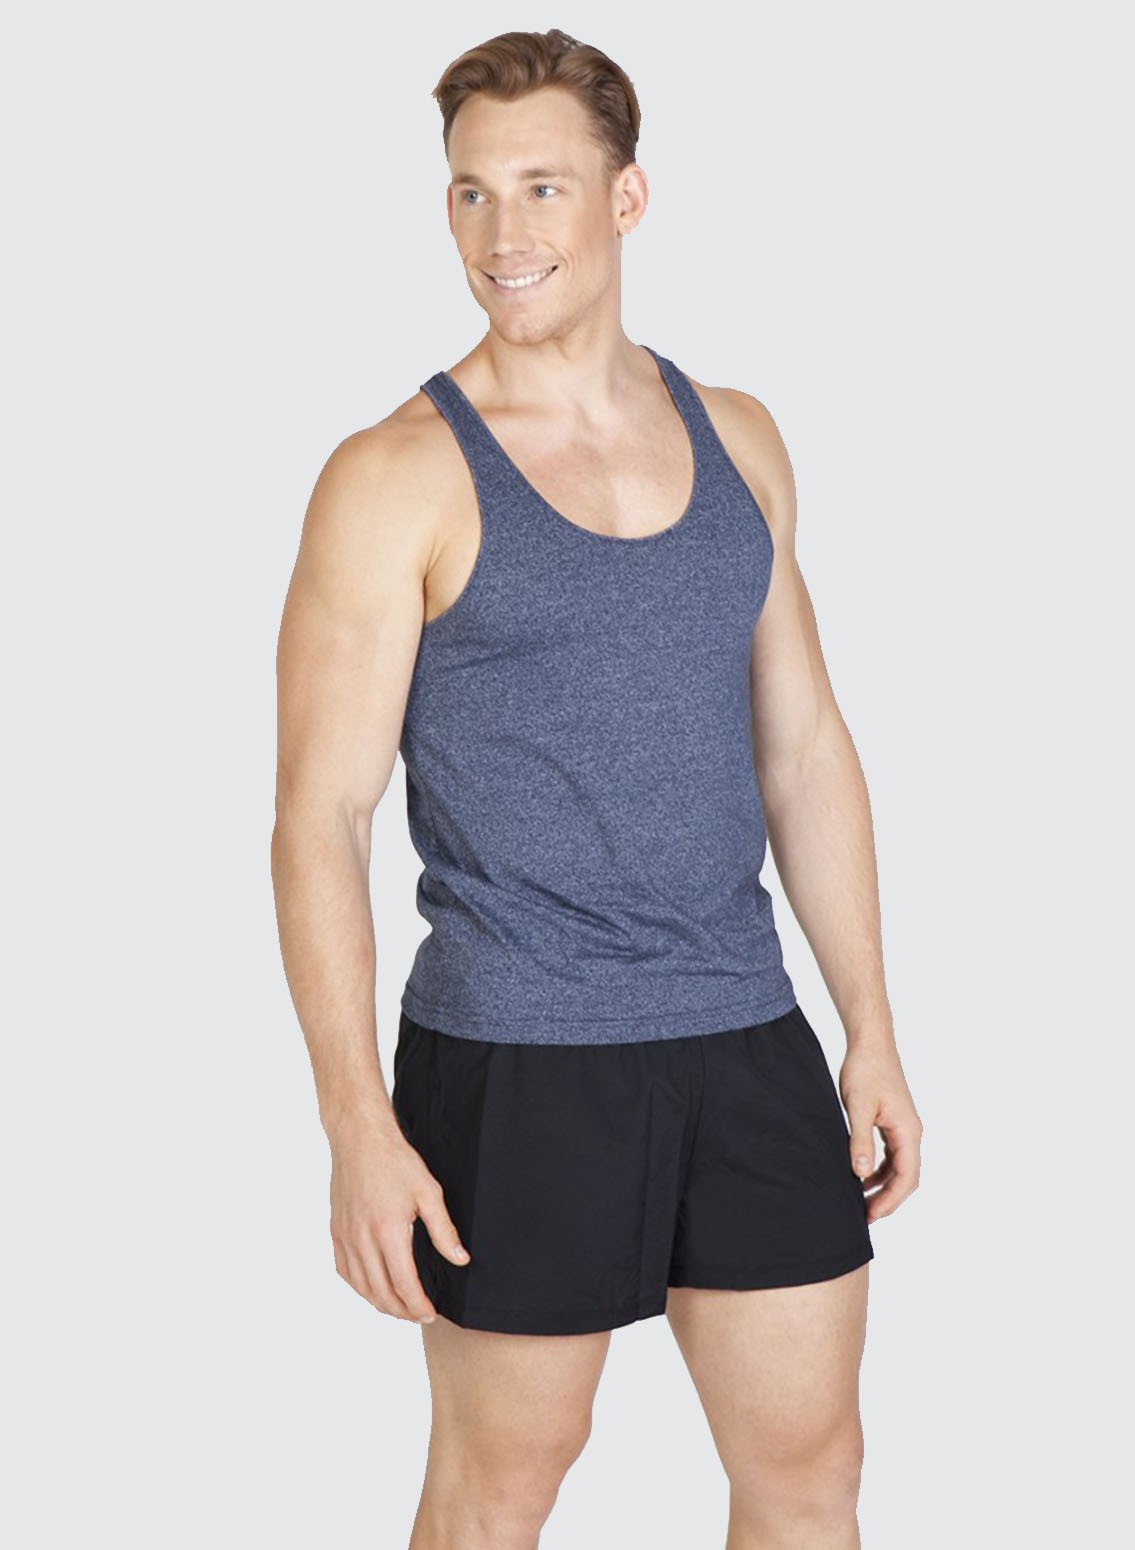 T409sg Mens Greatness Athletic T Back Singlet Business